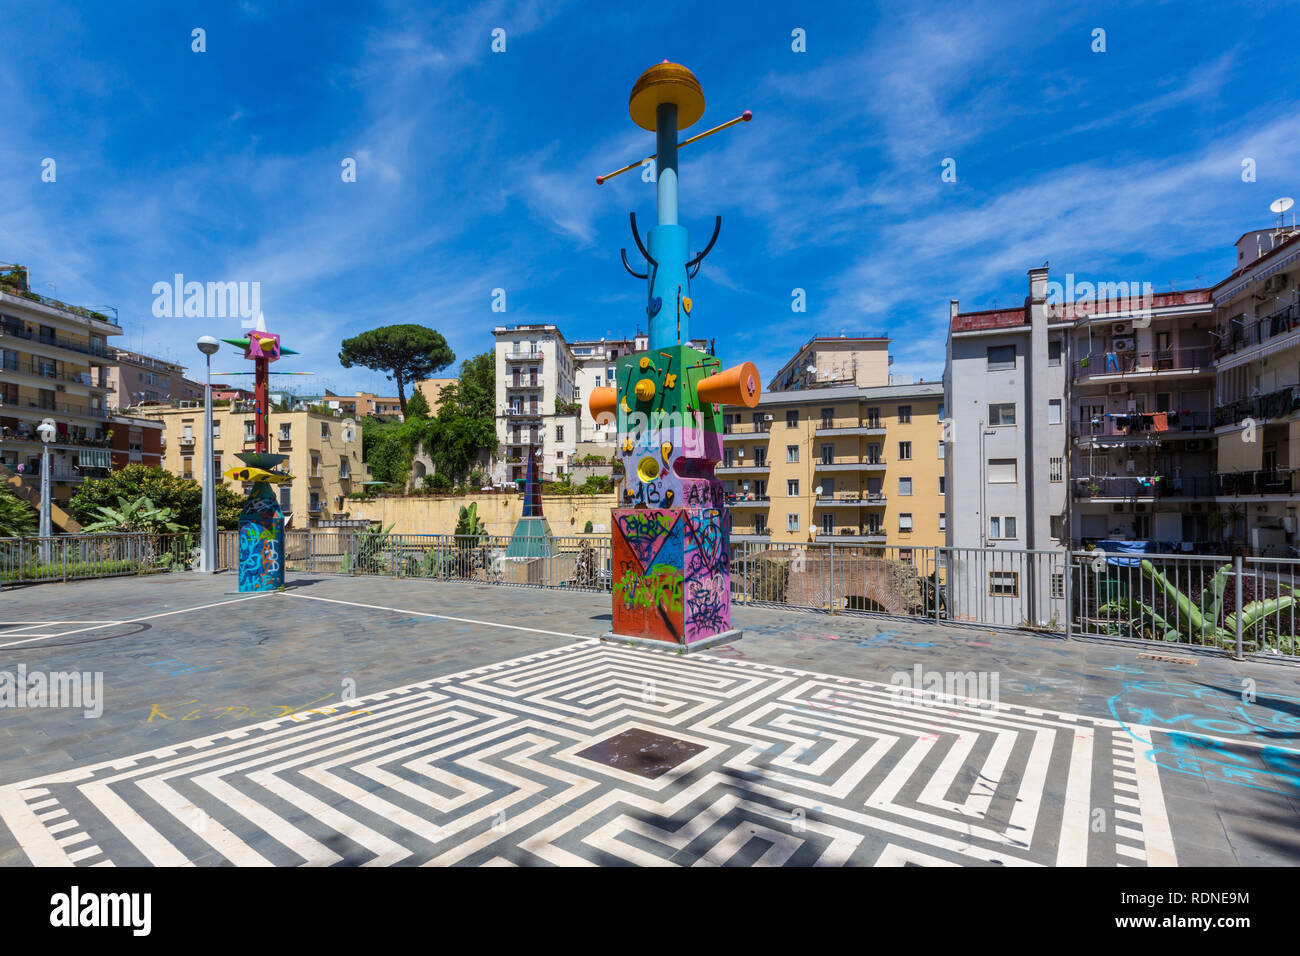 """Naples (Italy) - """"Metro dell'arte"""" is the urban railways line 1, an attraction with its stations and artistic artworks. Salvator Rosa station Stock Photo"""